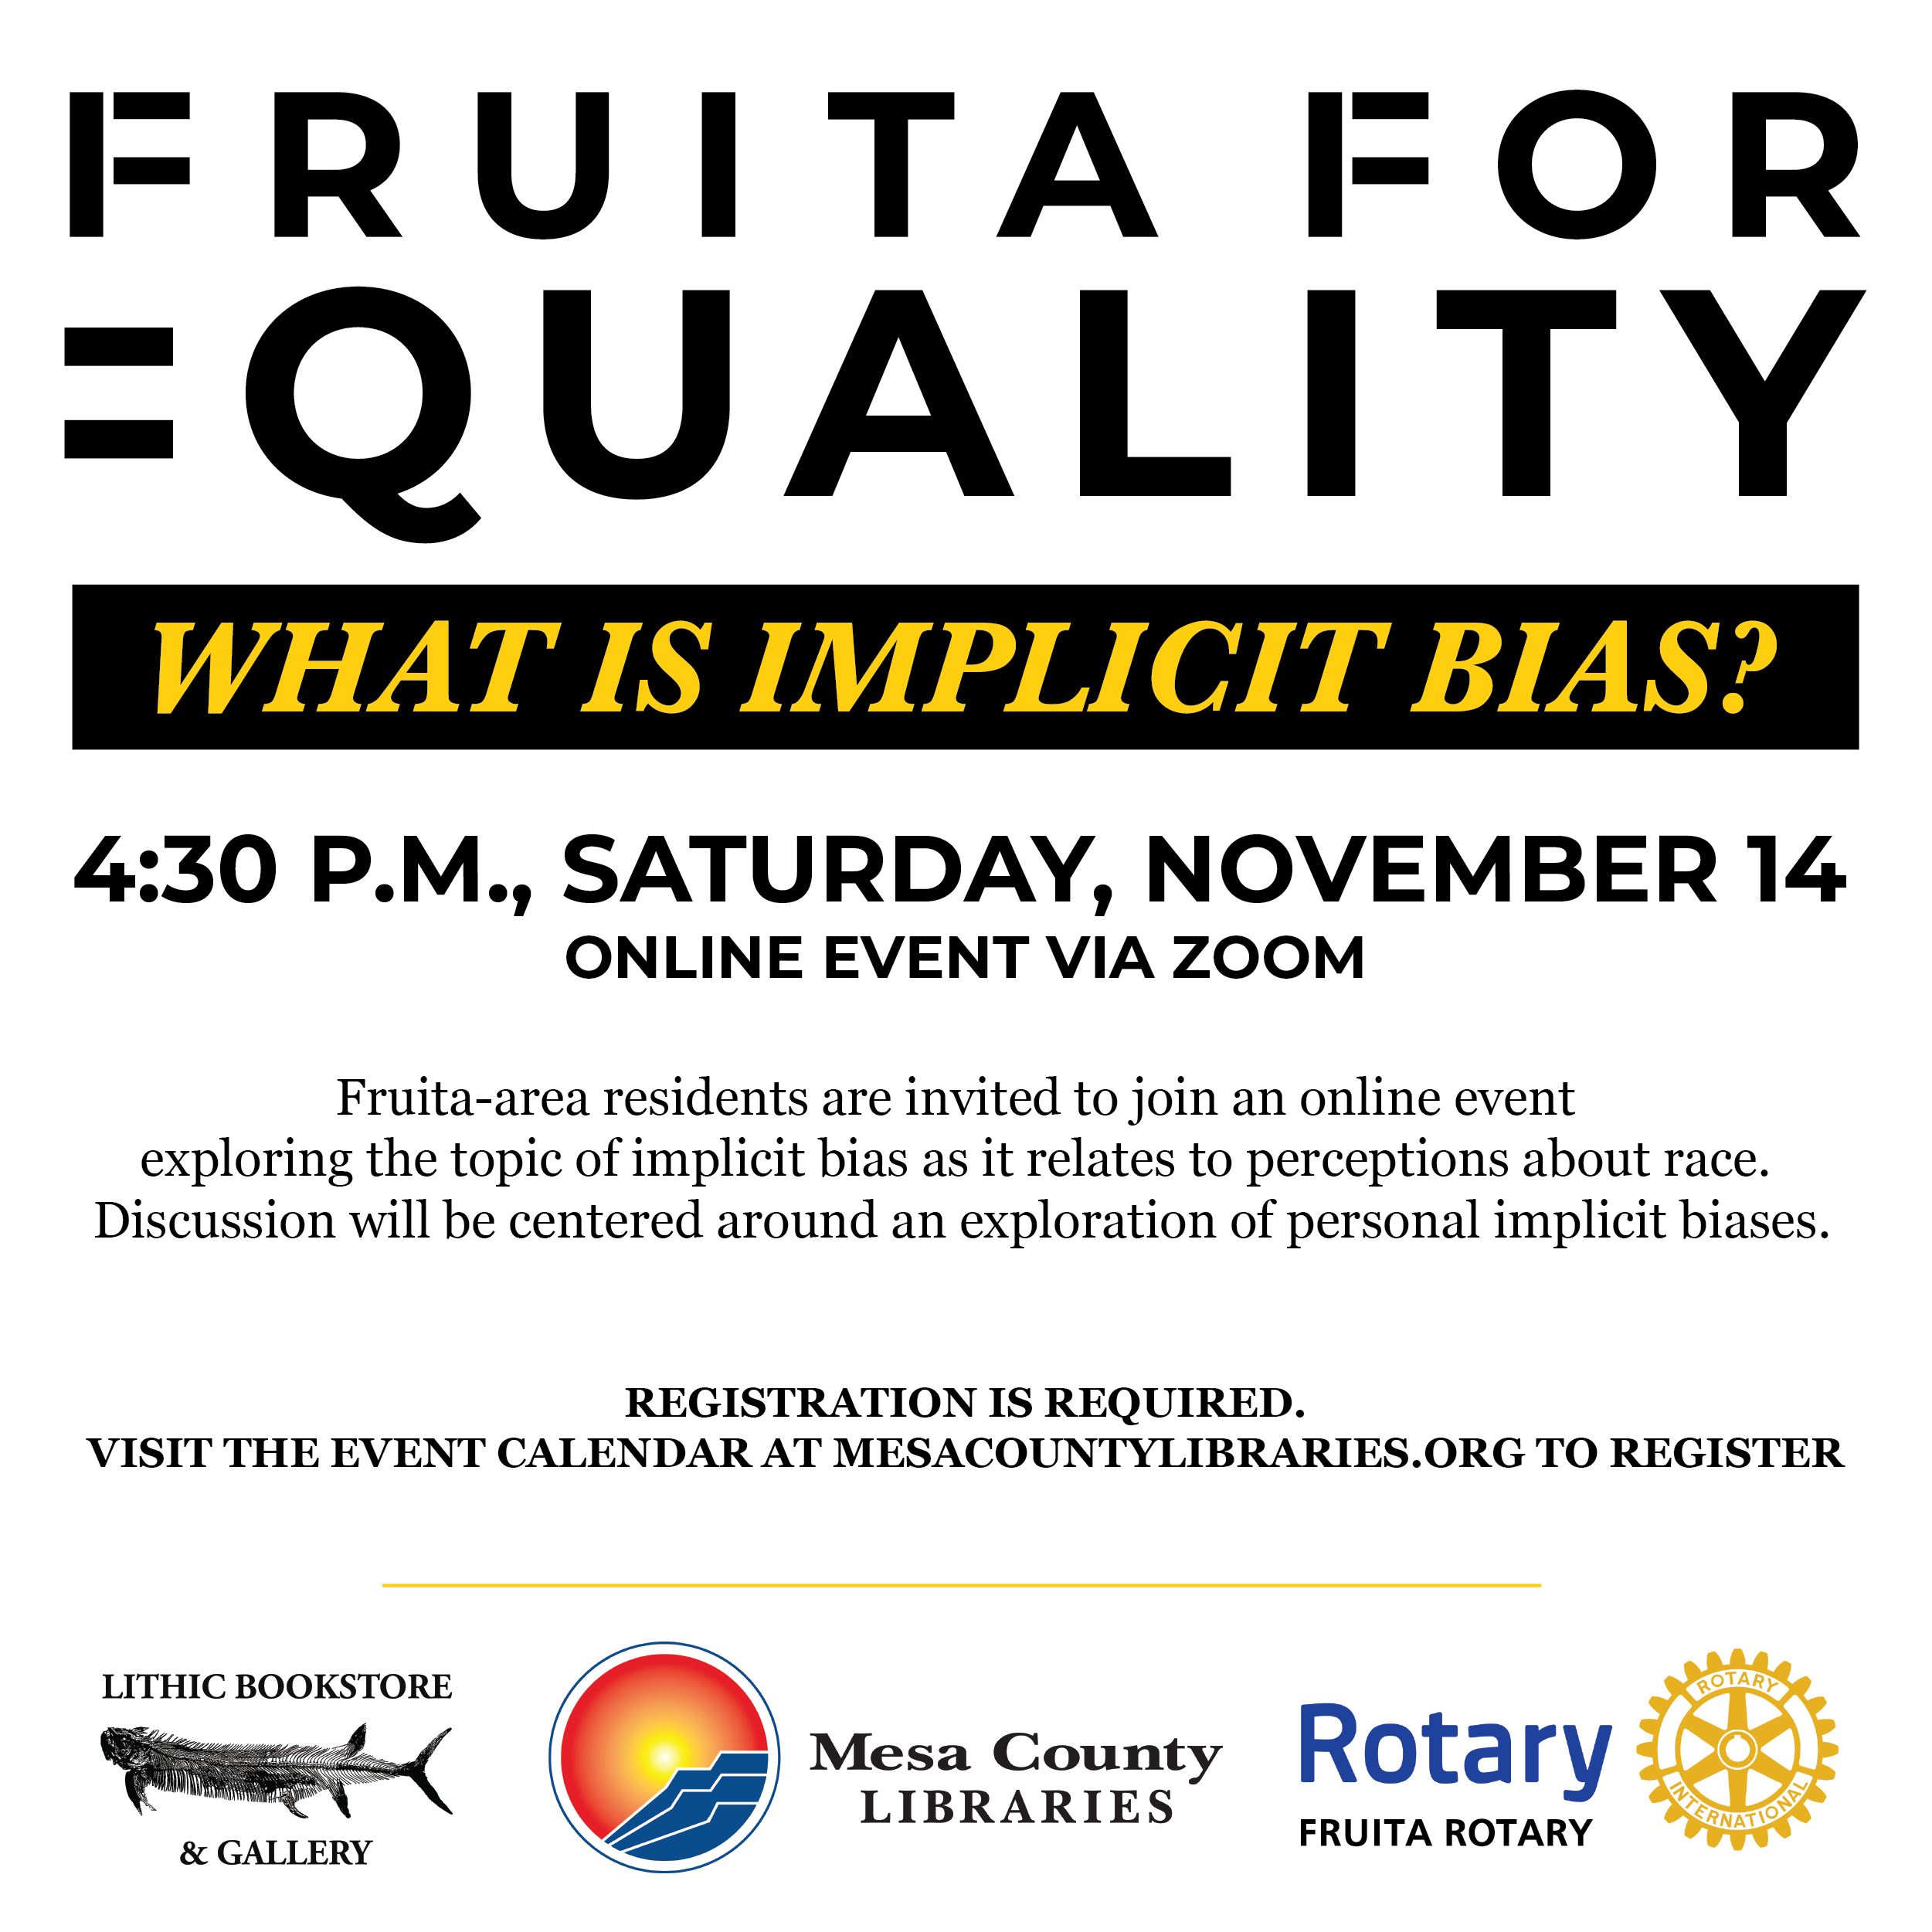 Fruita for Equality - What is Implicit Bias?